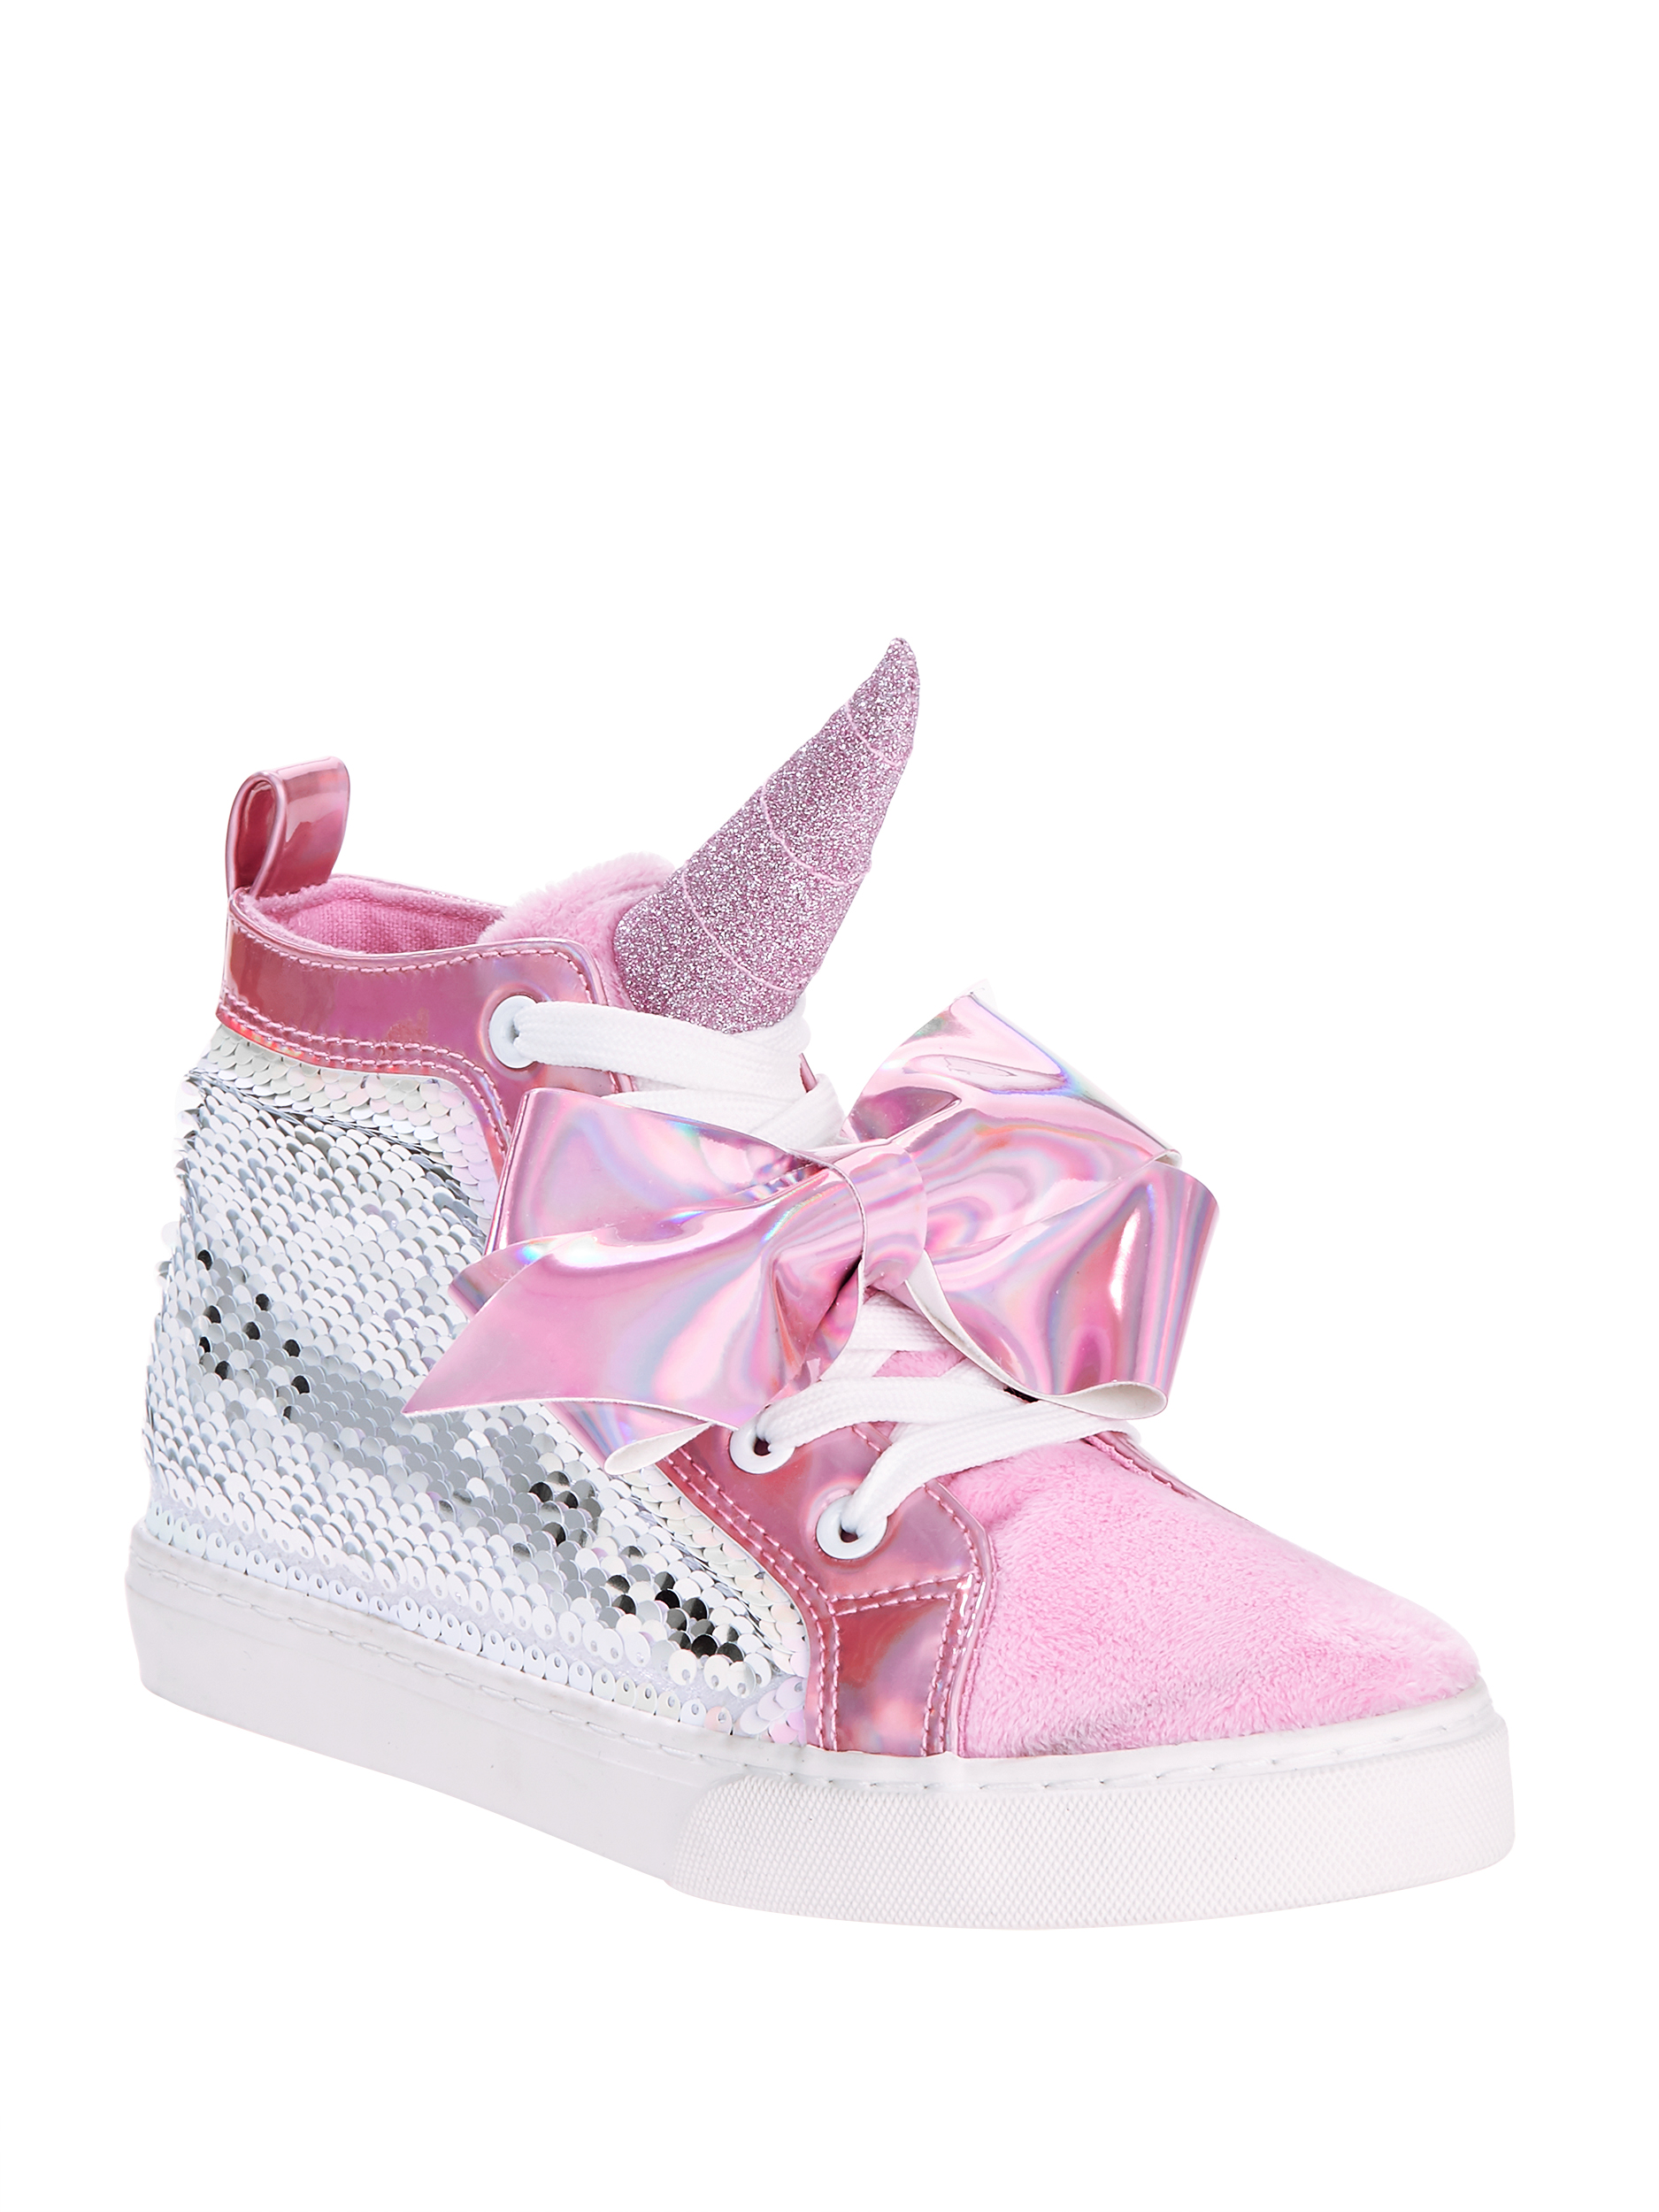 Jojo Siwa Jojo Siwa Girls Unicorn High Top Sneakers Walmart